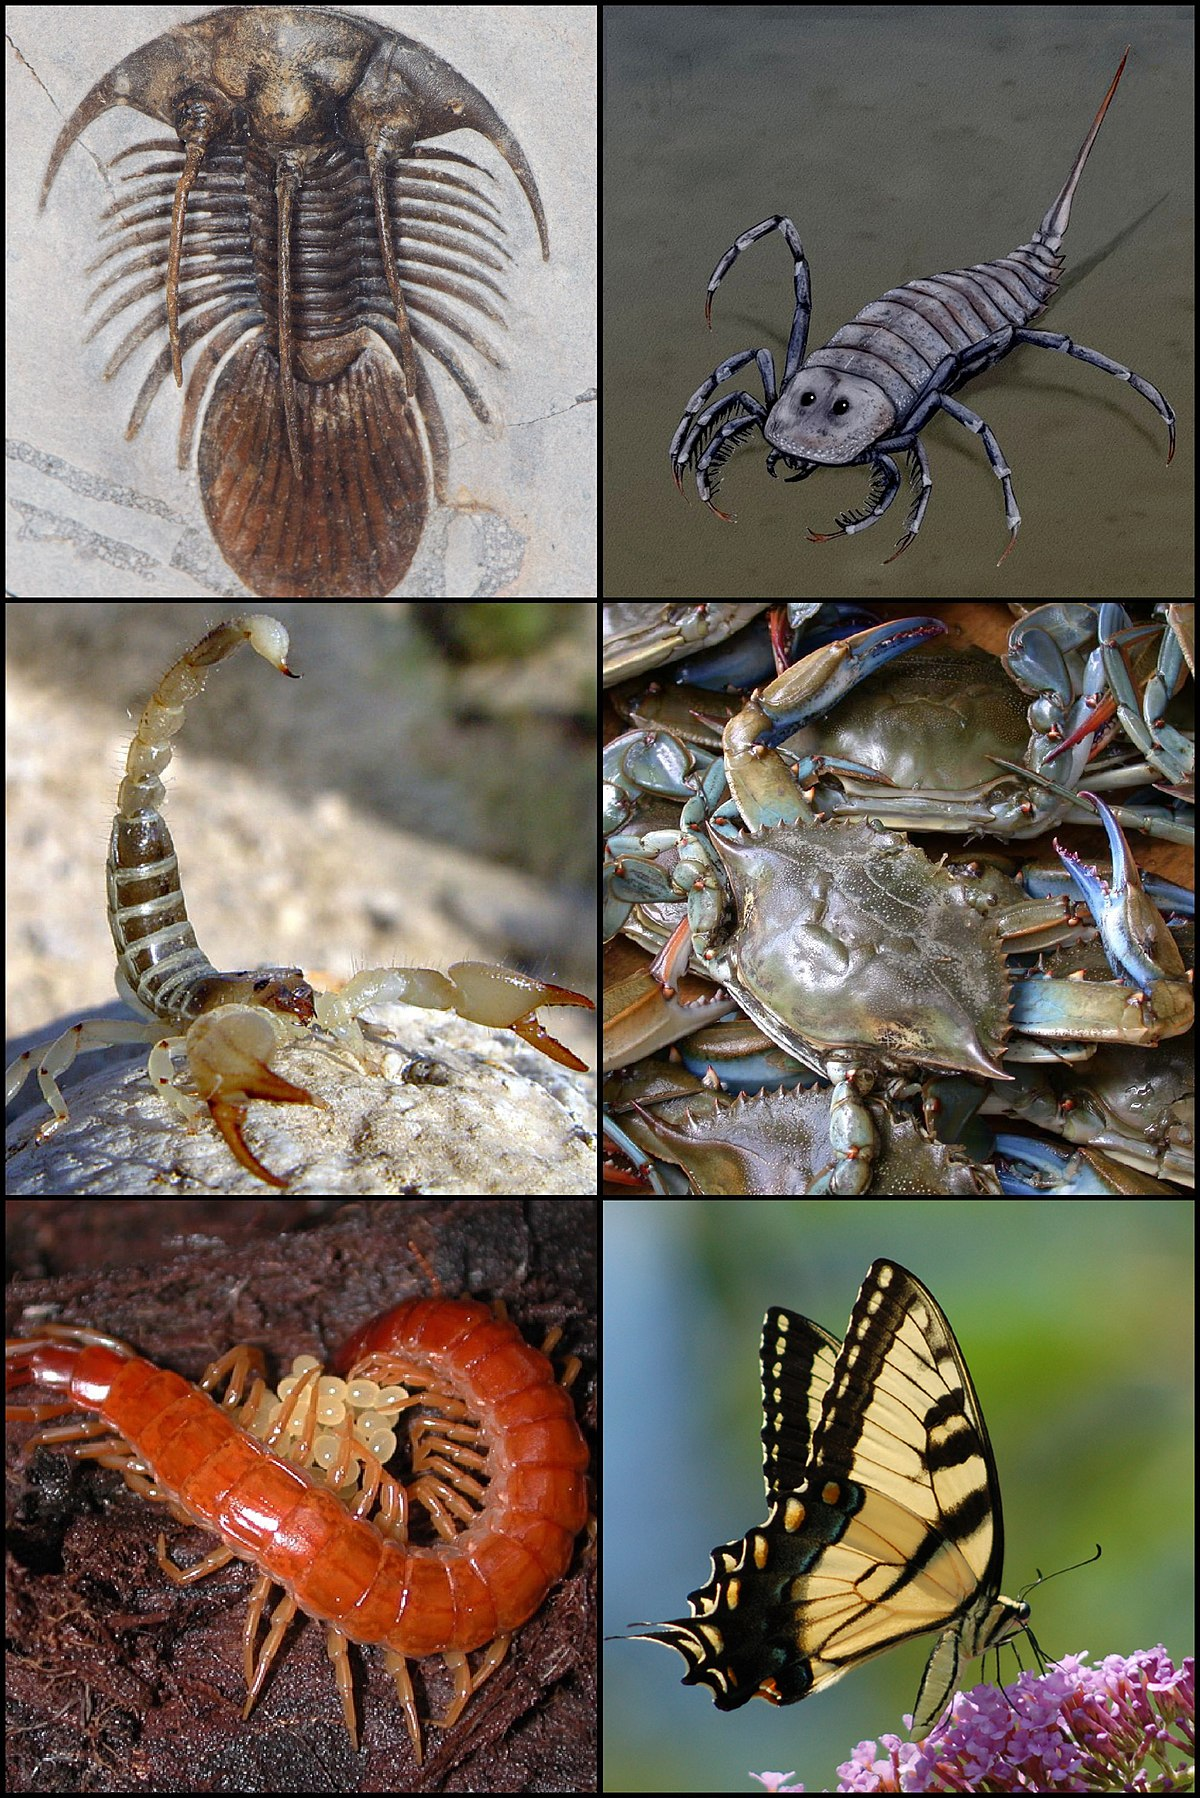 Phylogeny of the Annelida and allies